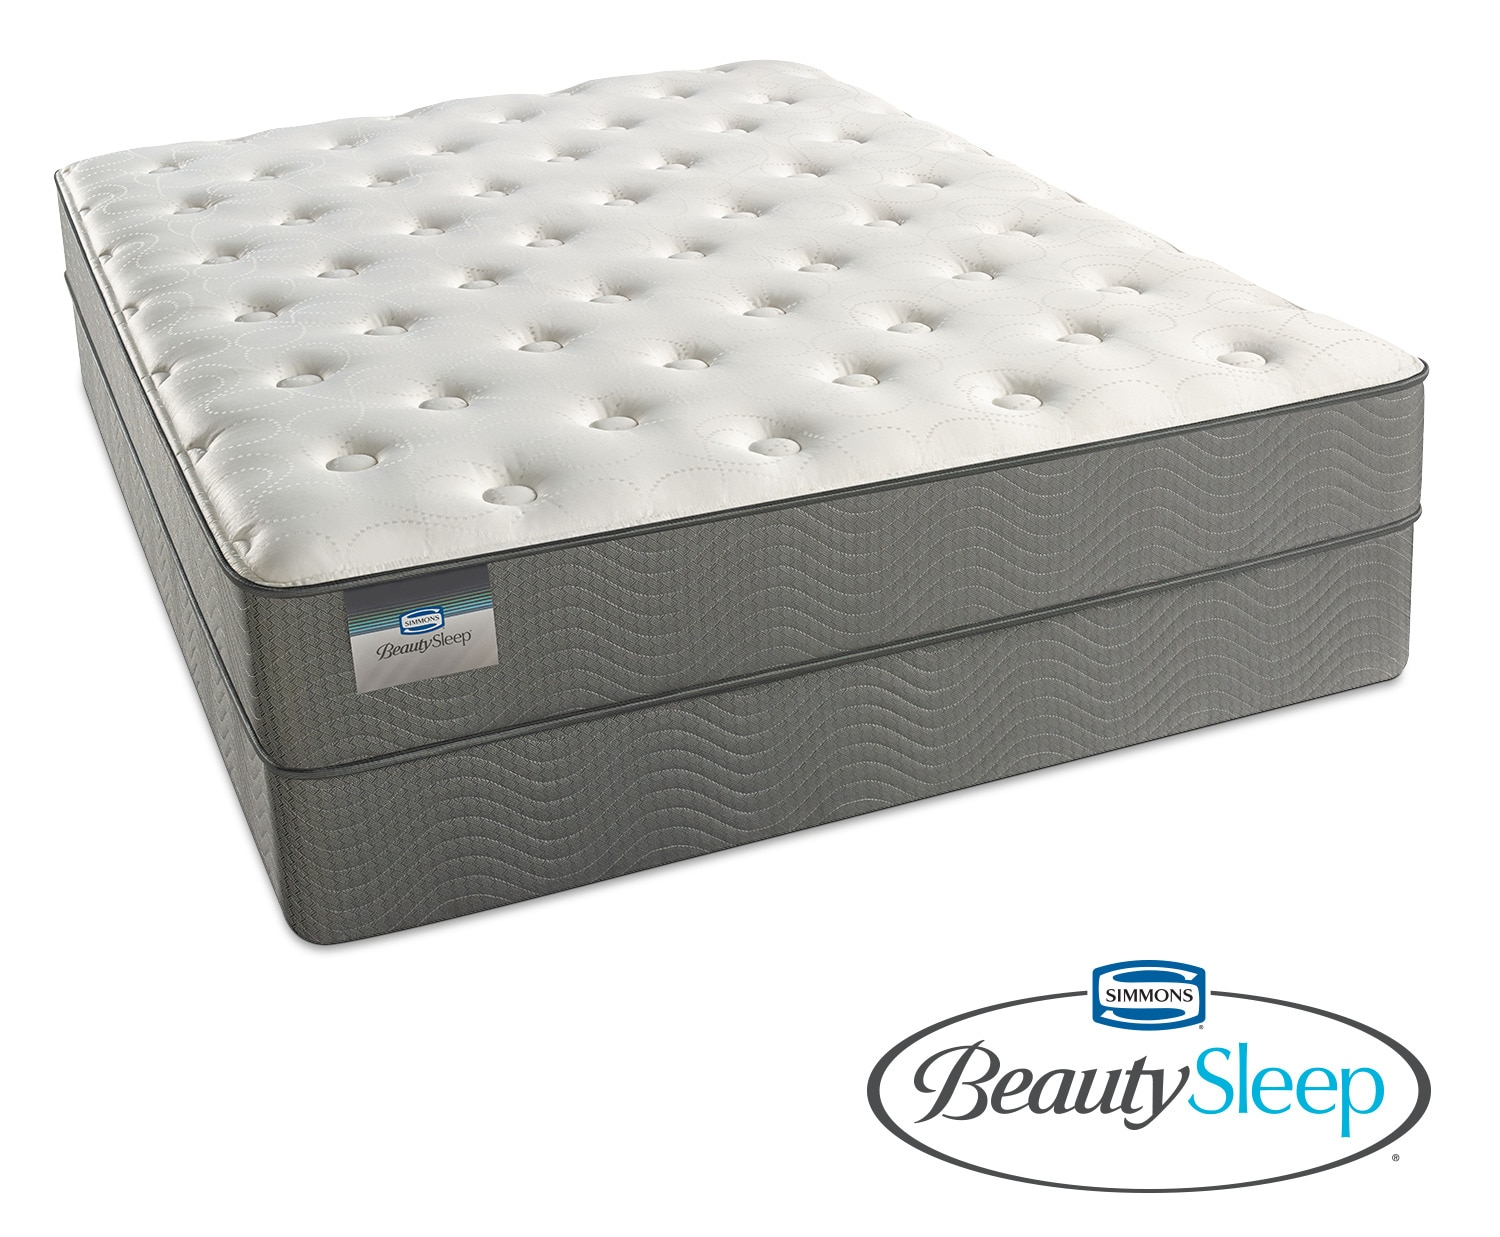 Mattresses And Bedding   Sapphire Blue Luxury Firm Queen Mattress And  Foundation Set